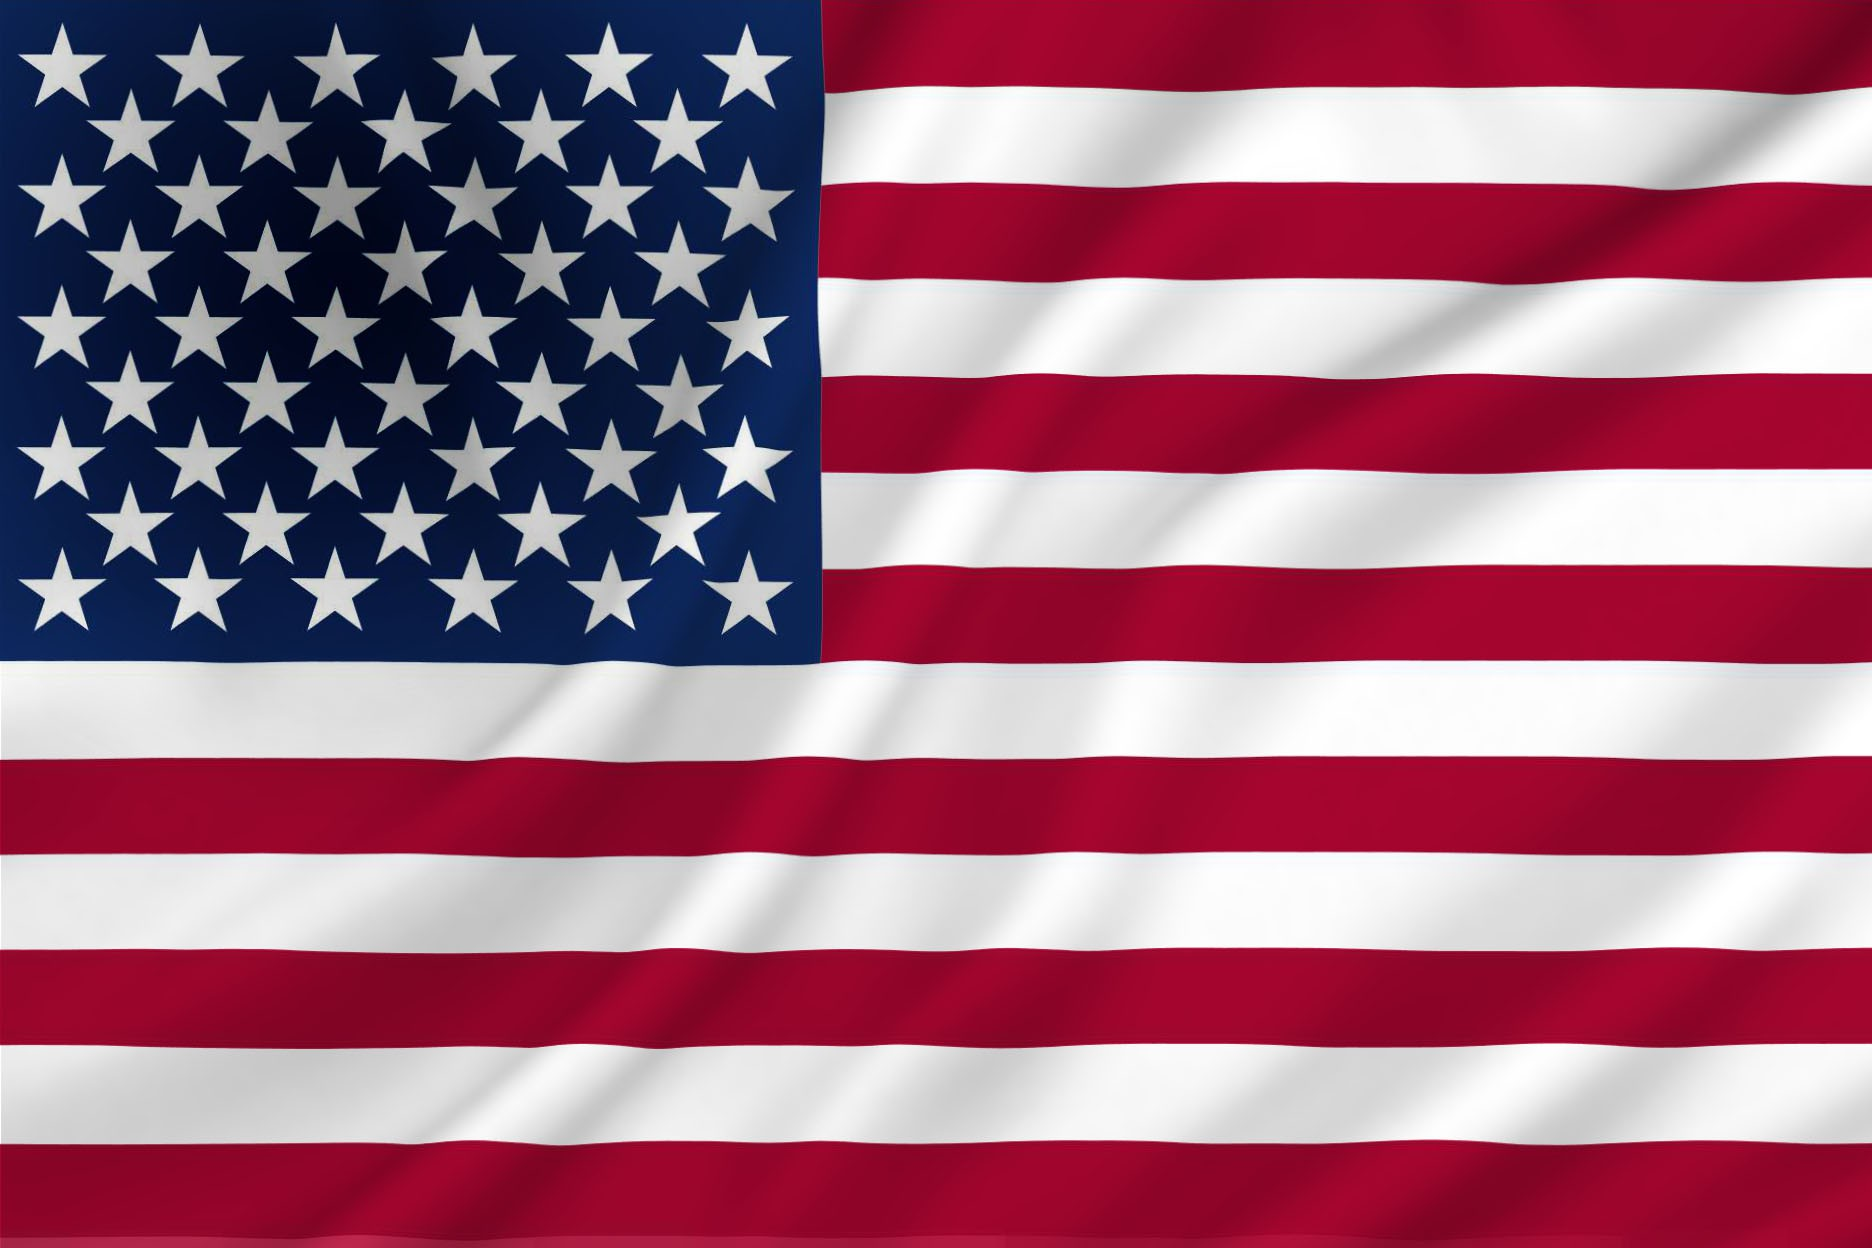 vlag_usa_rechtformaat_1_1